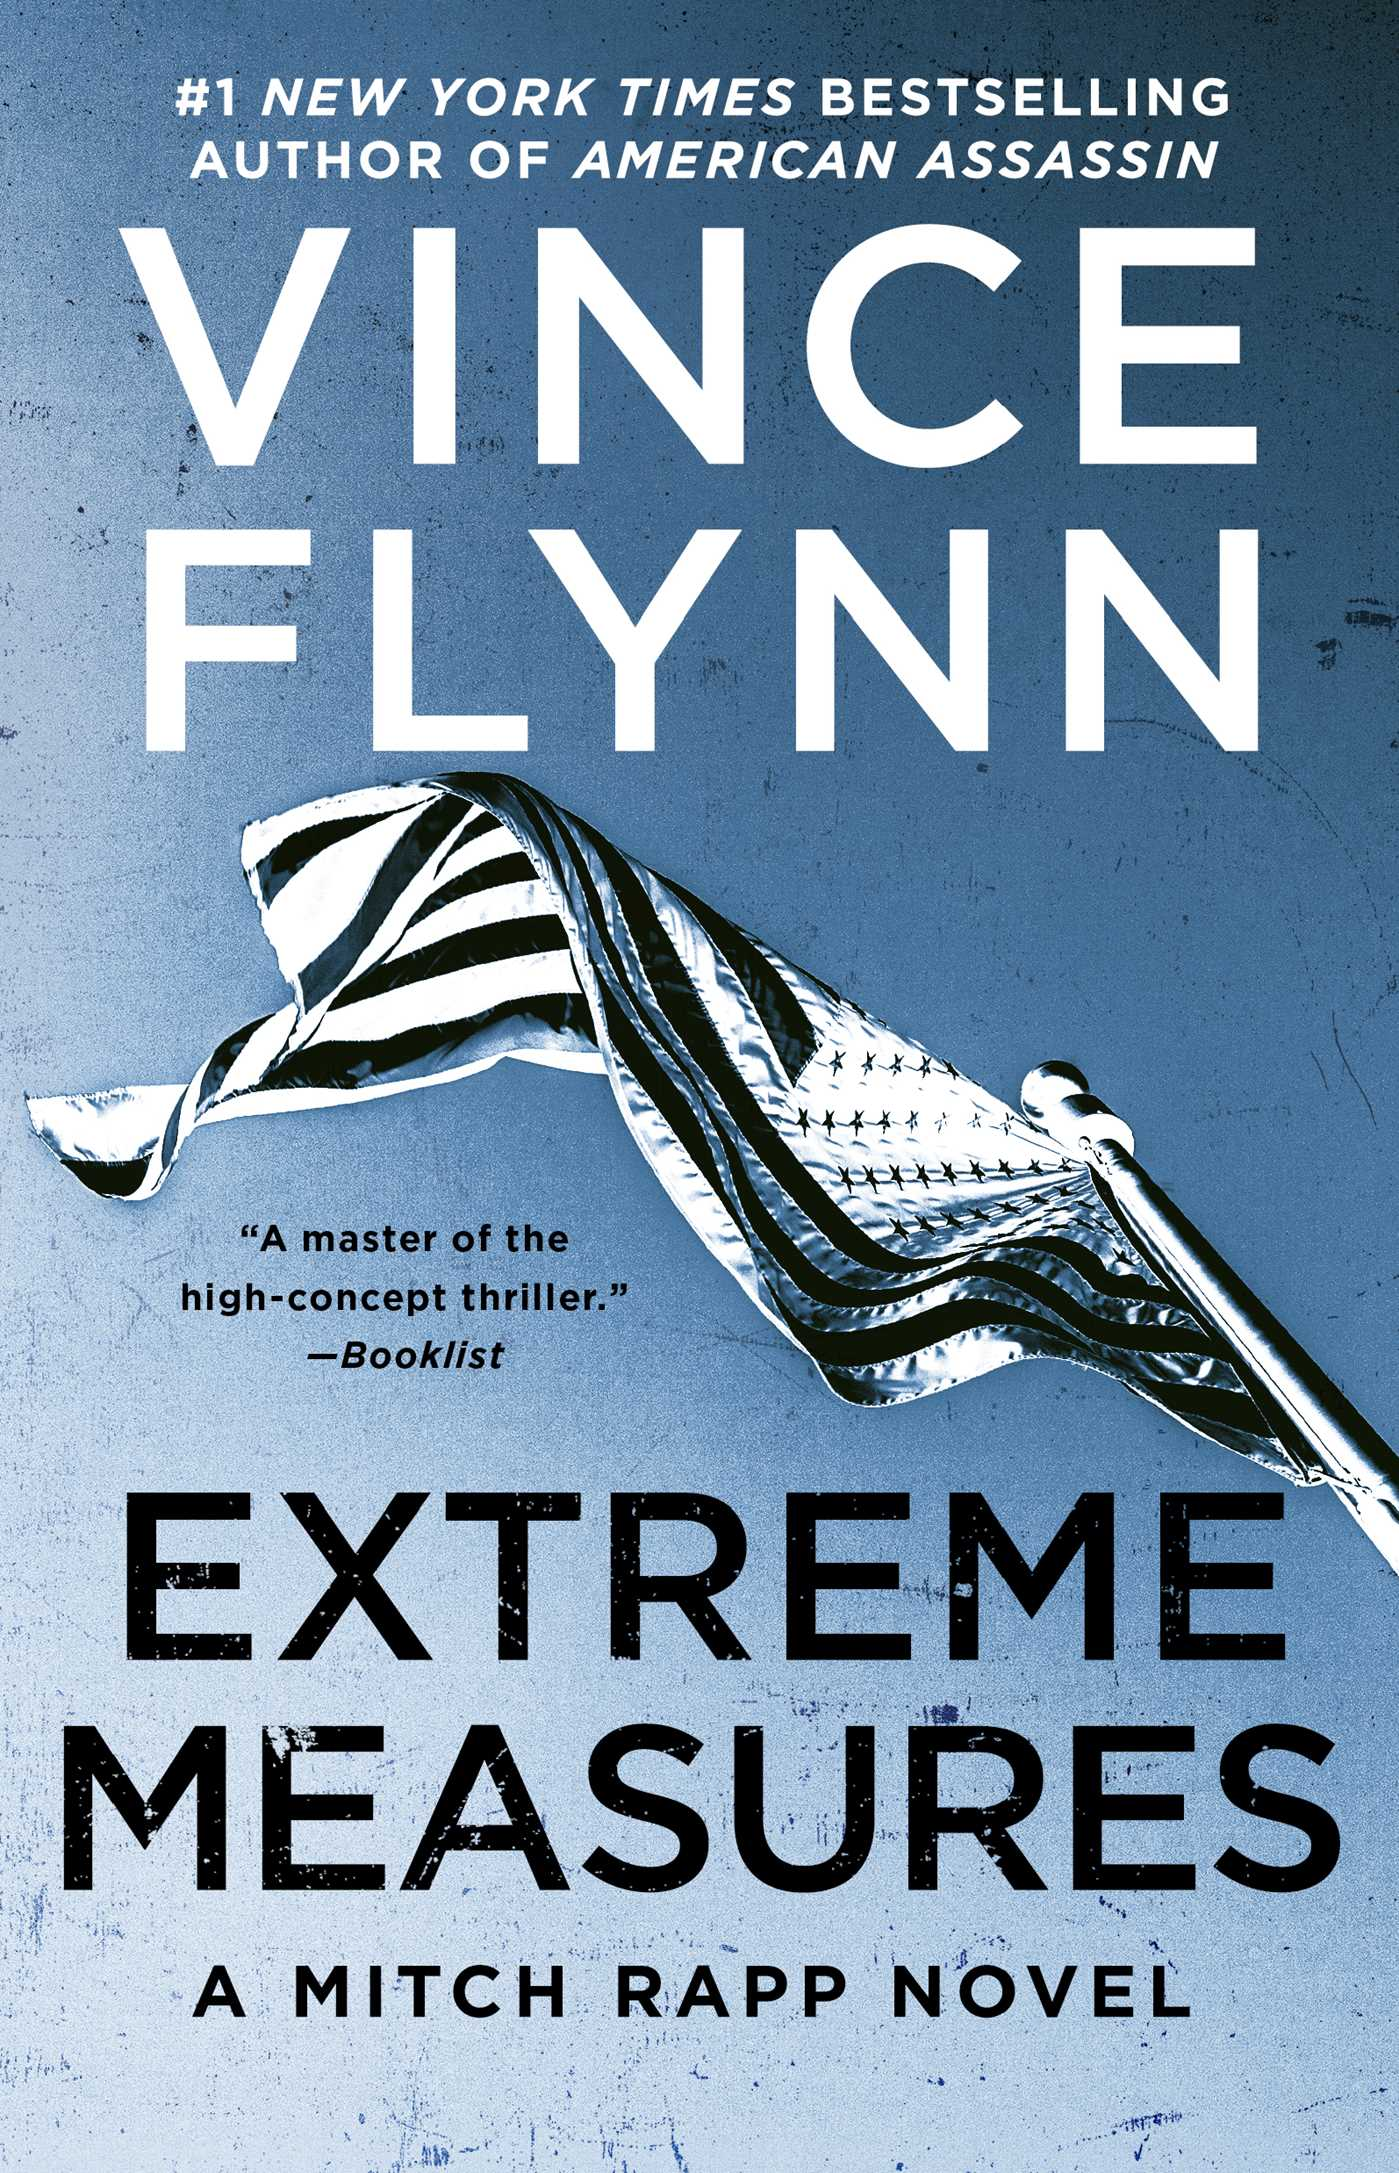 Extreme-measures-9781416593997_hr